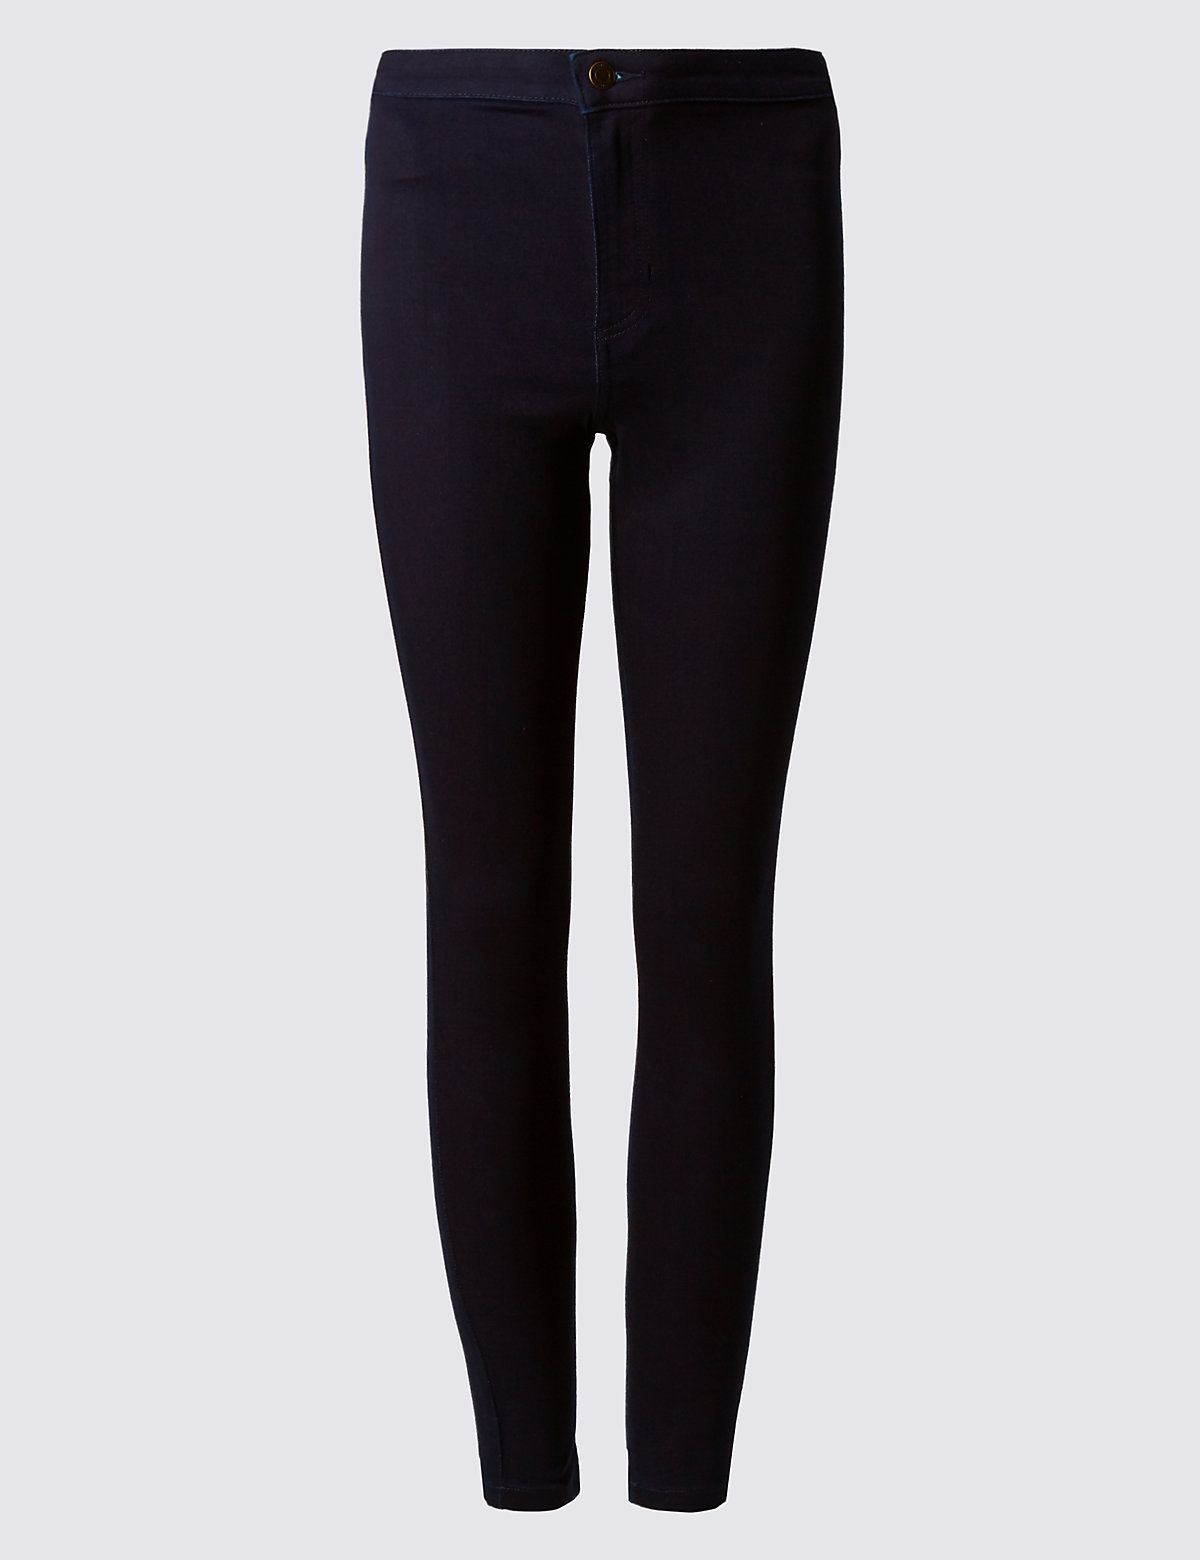 M&S Collection High Waist Super Skinny Jeans